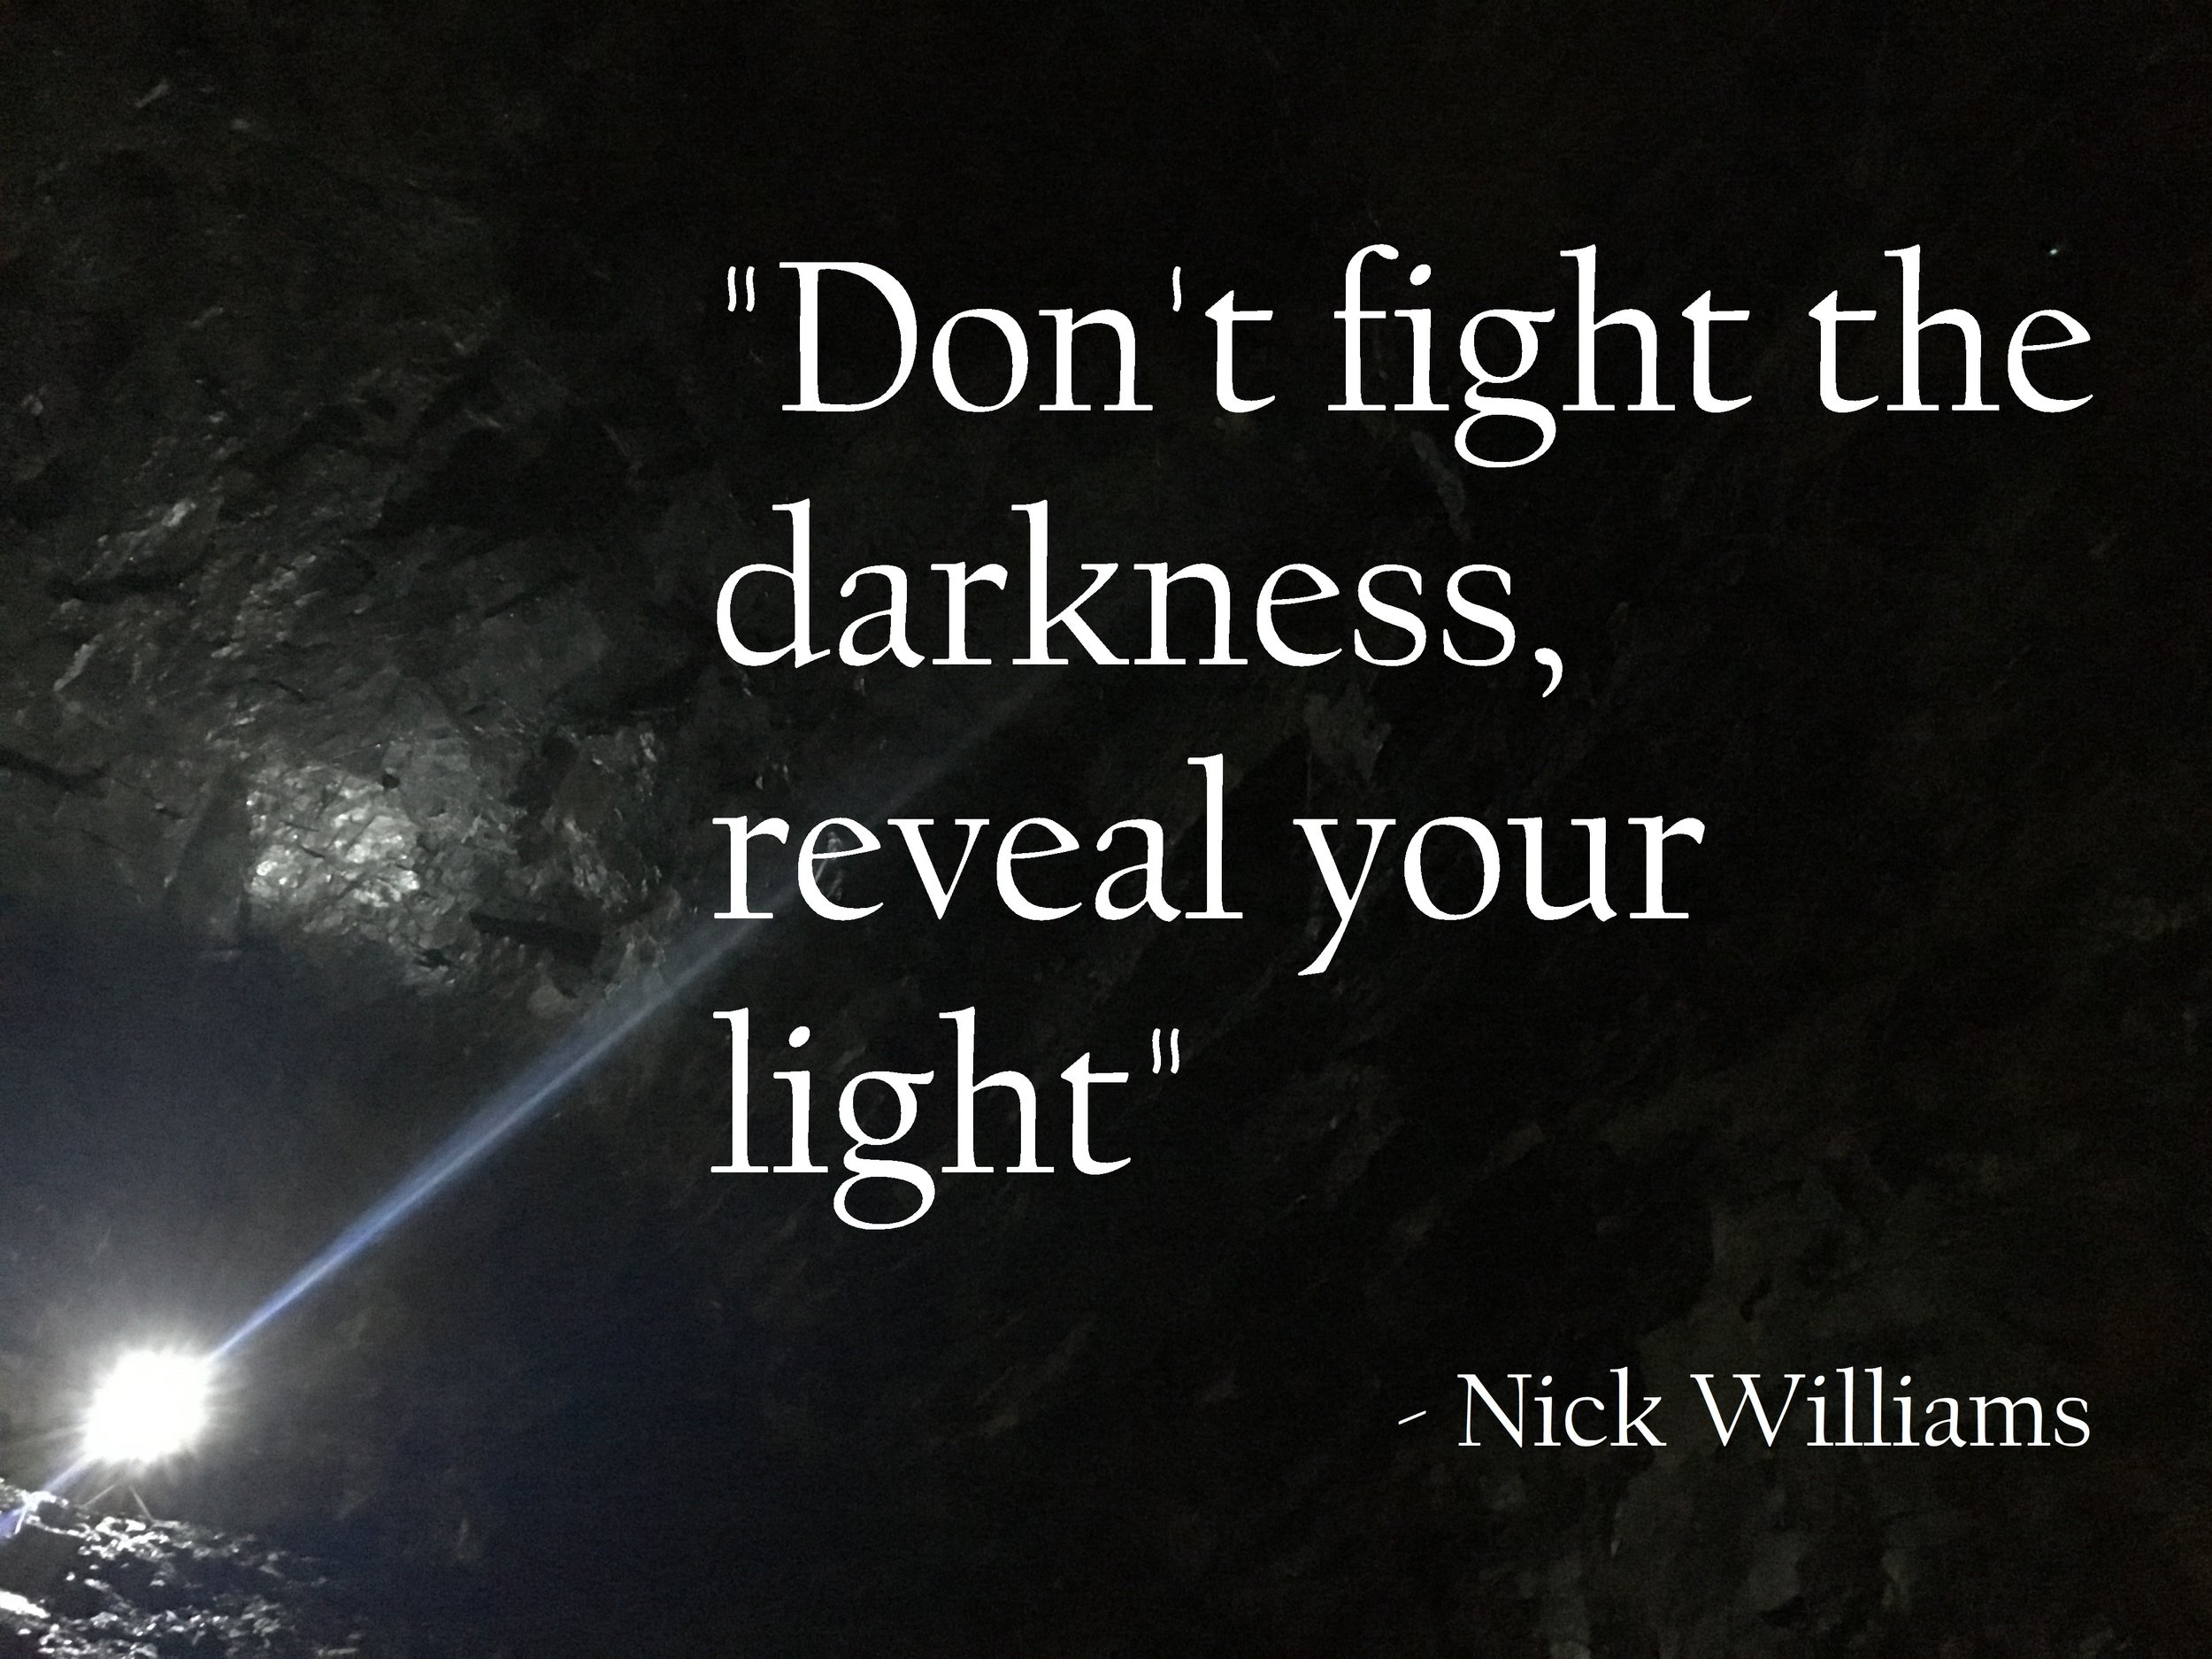 Don't fight the darkness reveal your light - nick williams.jpg